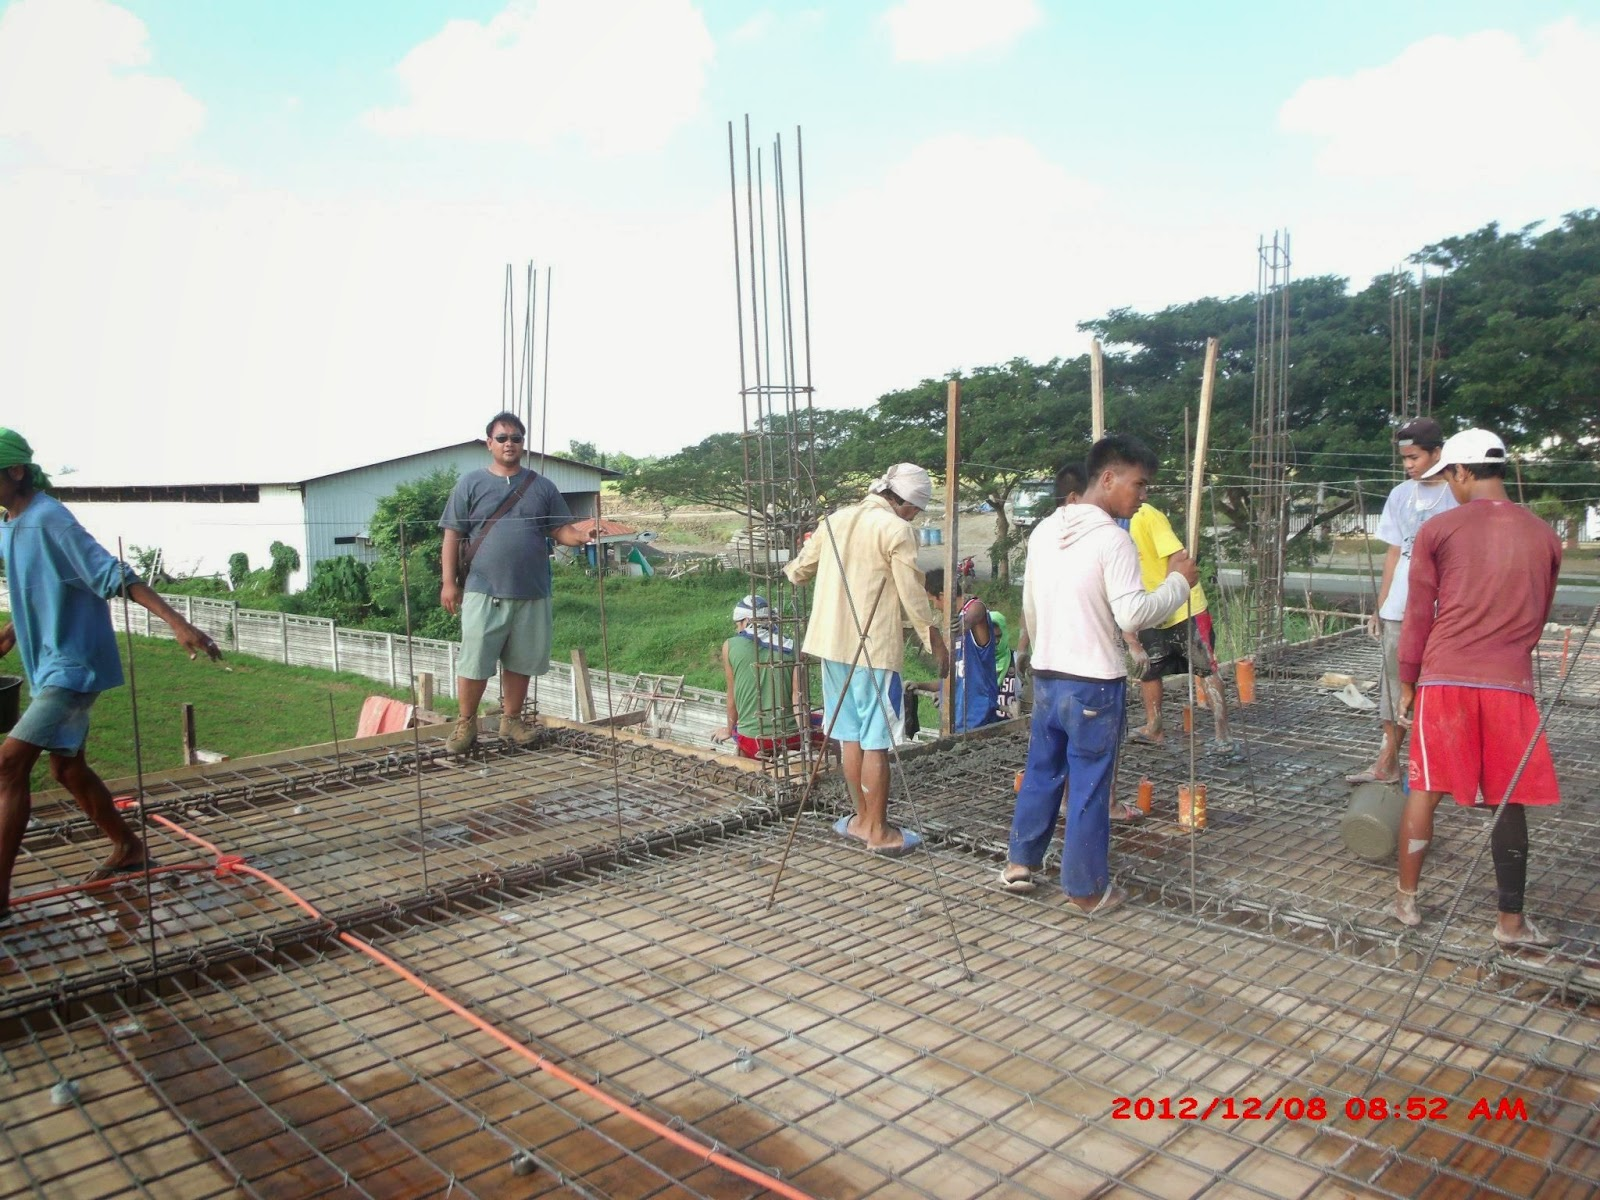 Savannah Trails house construction project in Oton, Iloilo ...